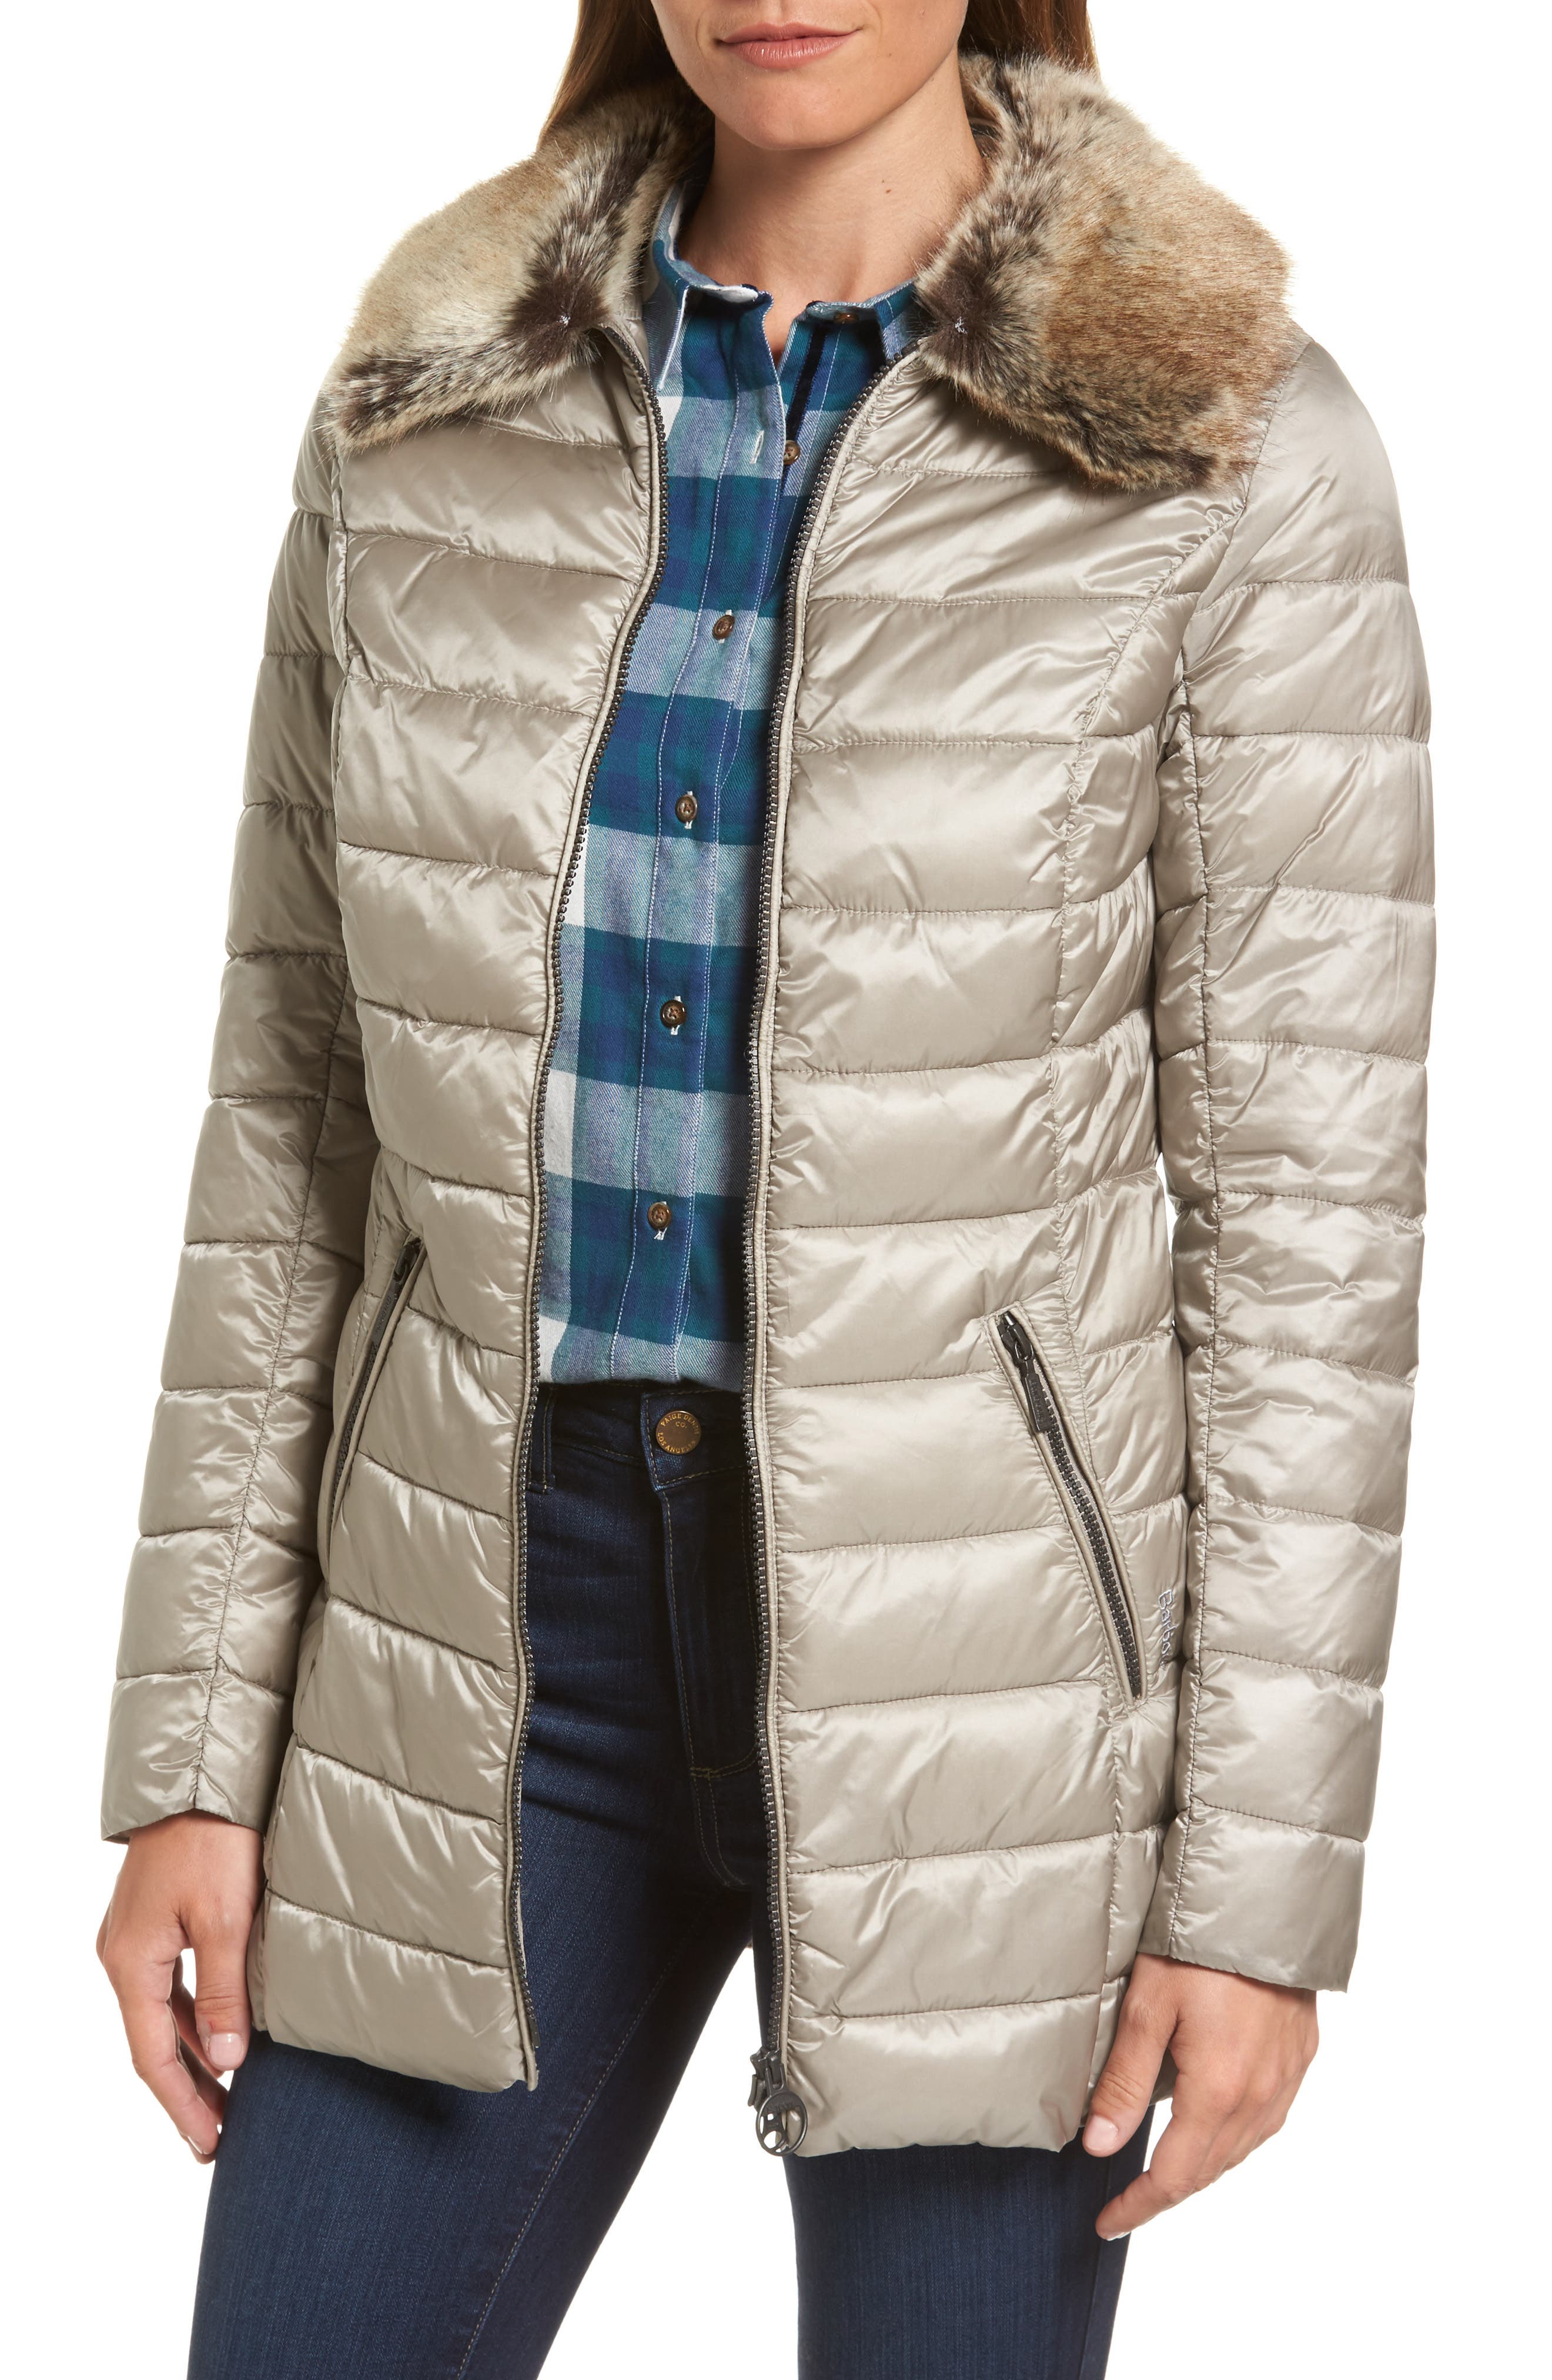 Rambleton Water Resistant Quilted Jacket with Faux Fur Collar,                         Main,                         color, 270